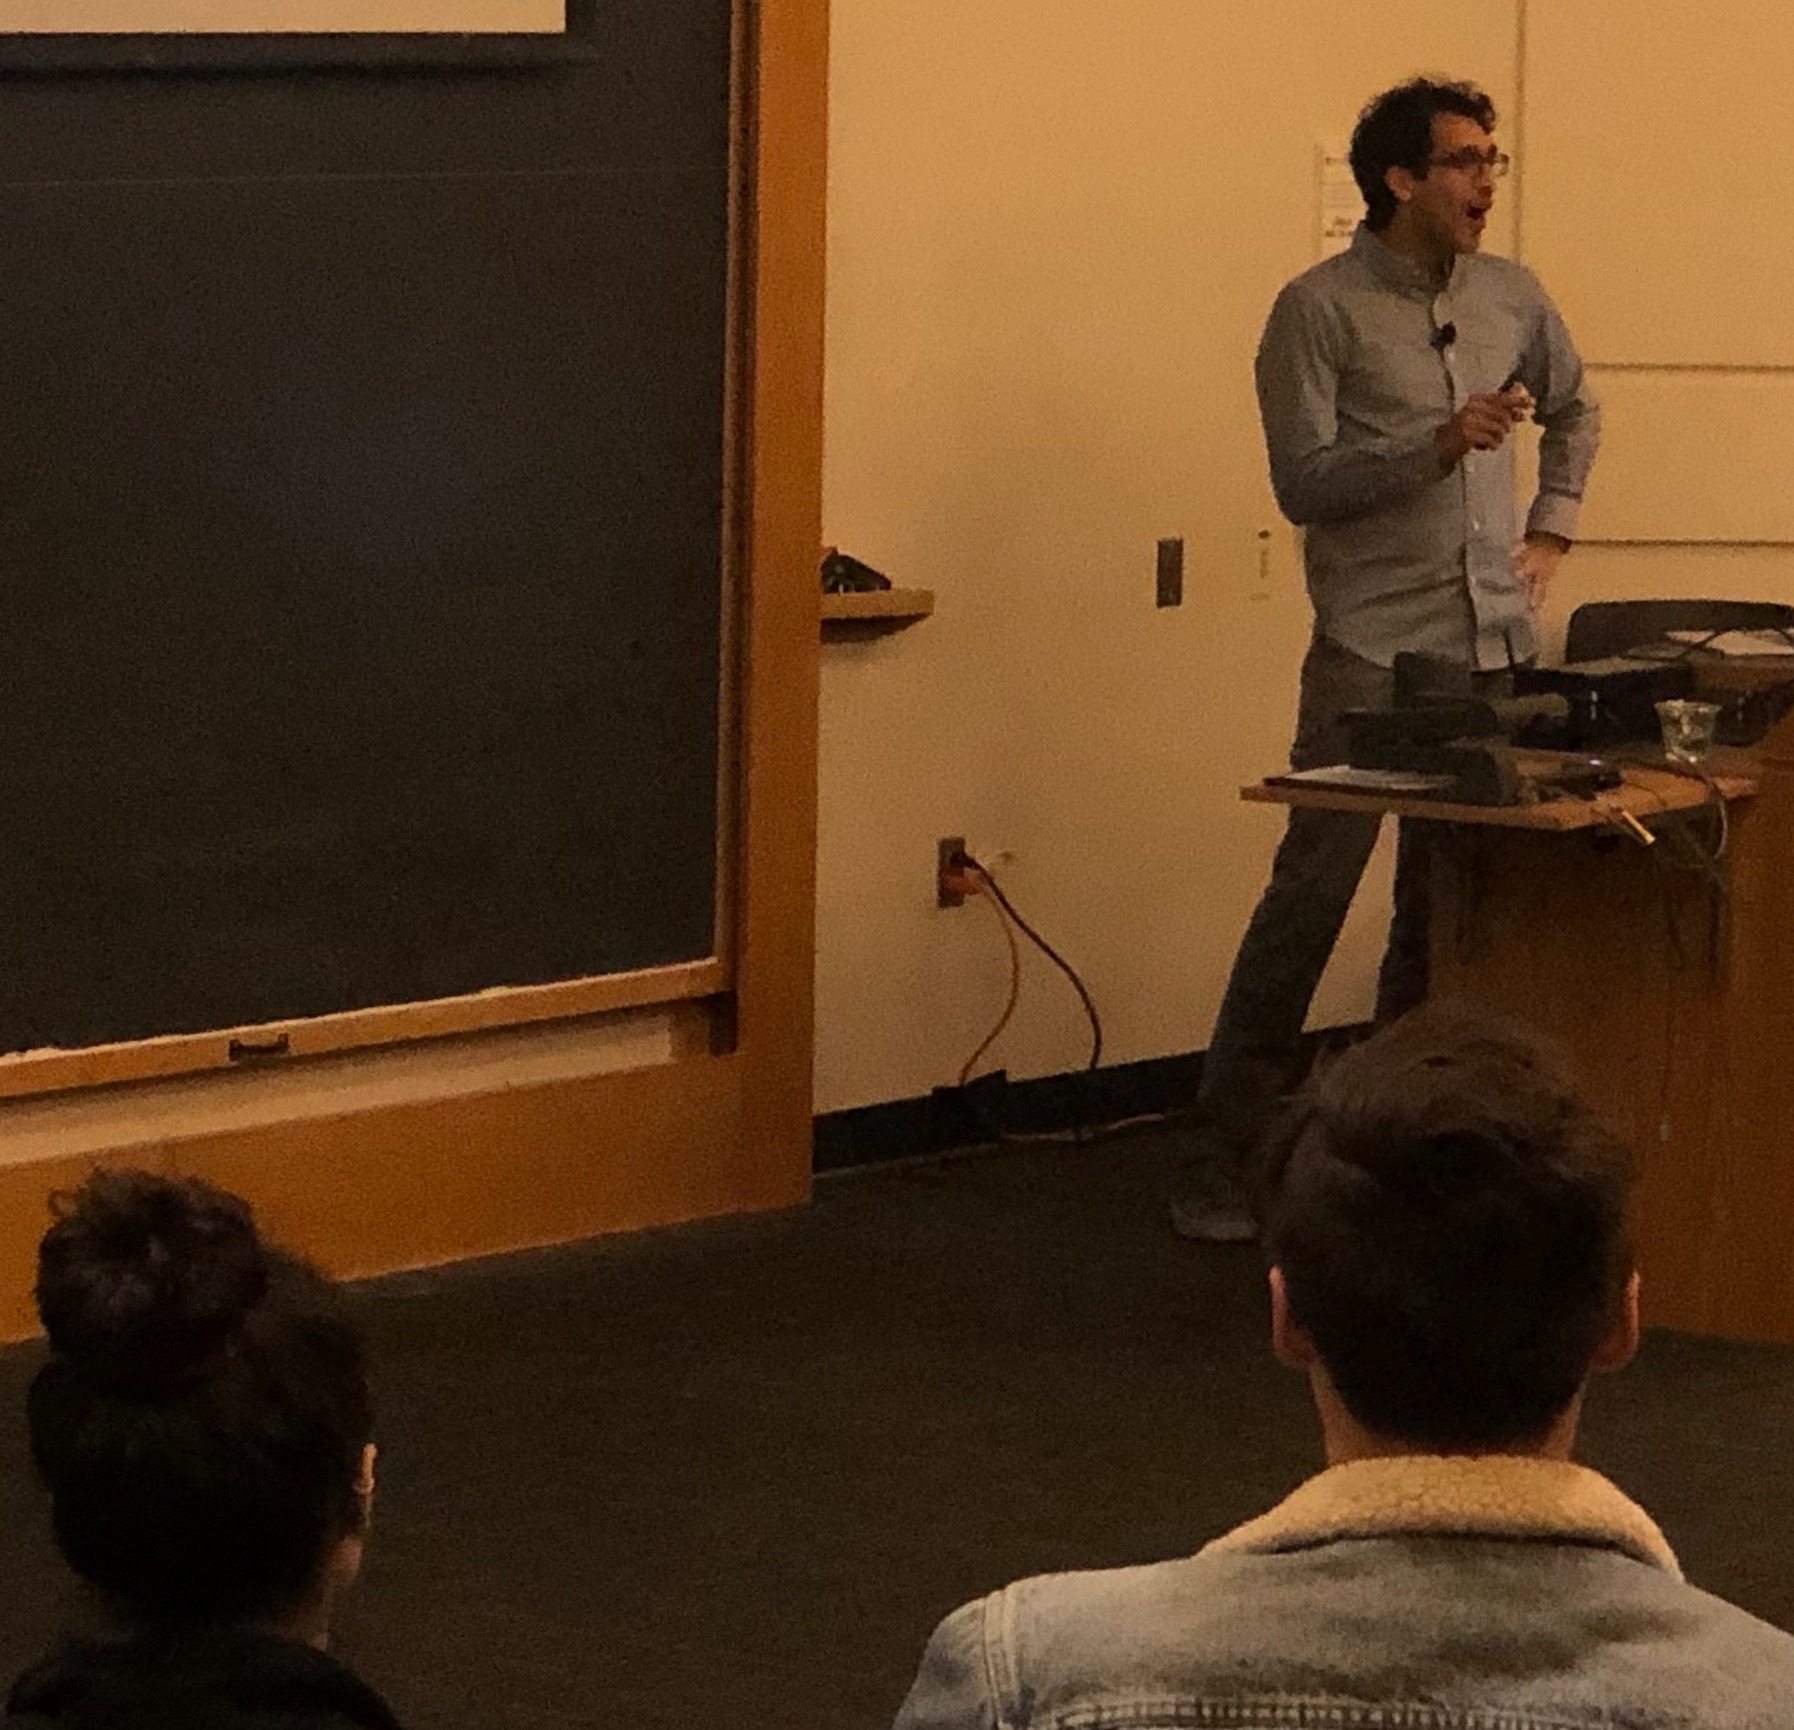 Arjun Raj Keystone Public talk @ CU Boulder : Time machine and all !